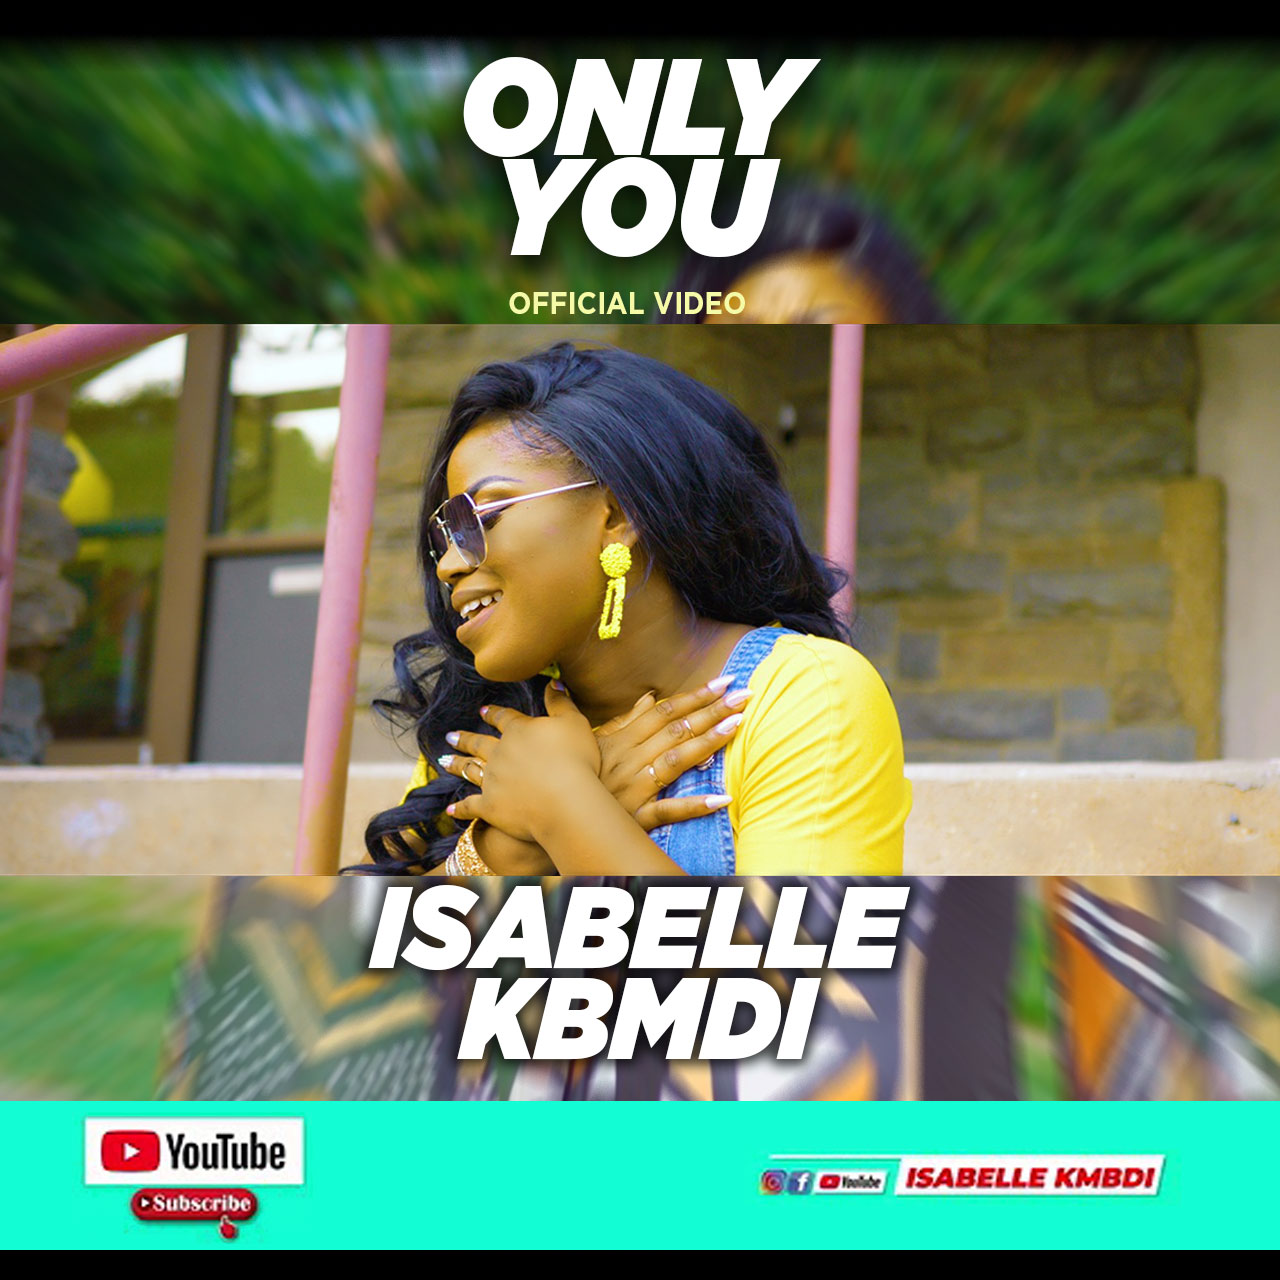 """Video: Isabelle Kbmdi – """"Only You"""" (Official Video)"""